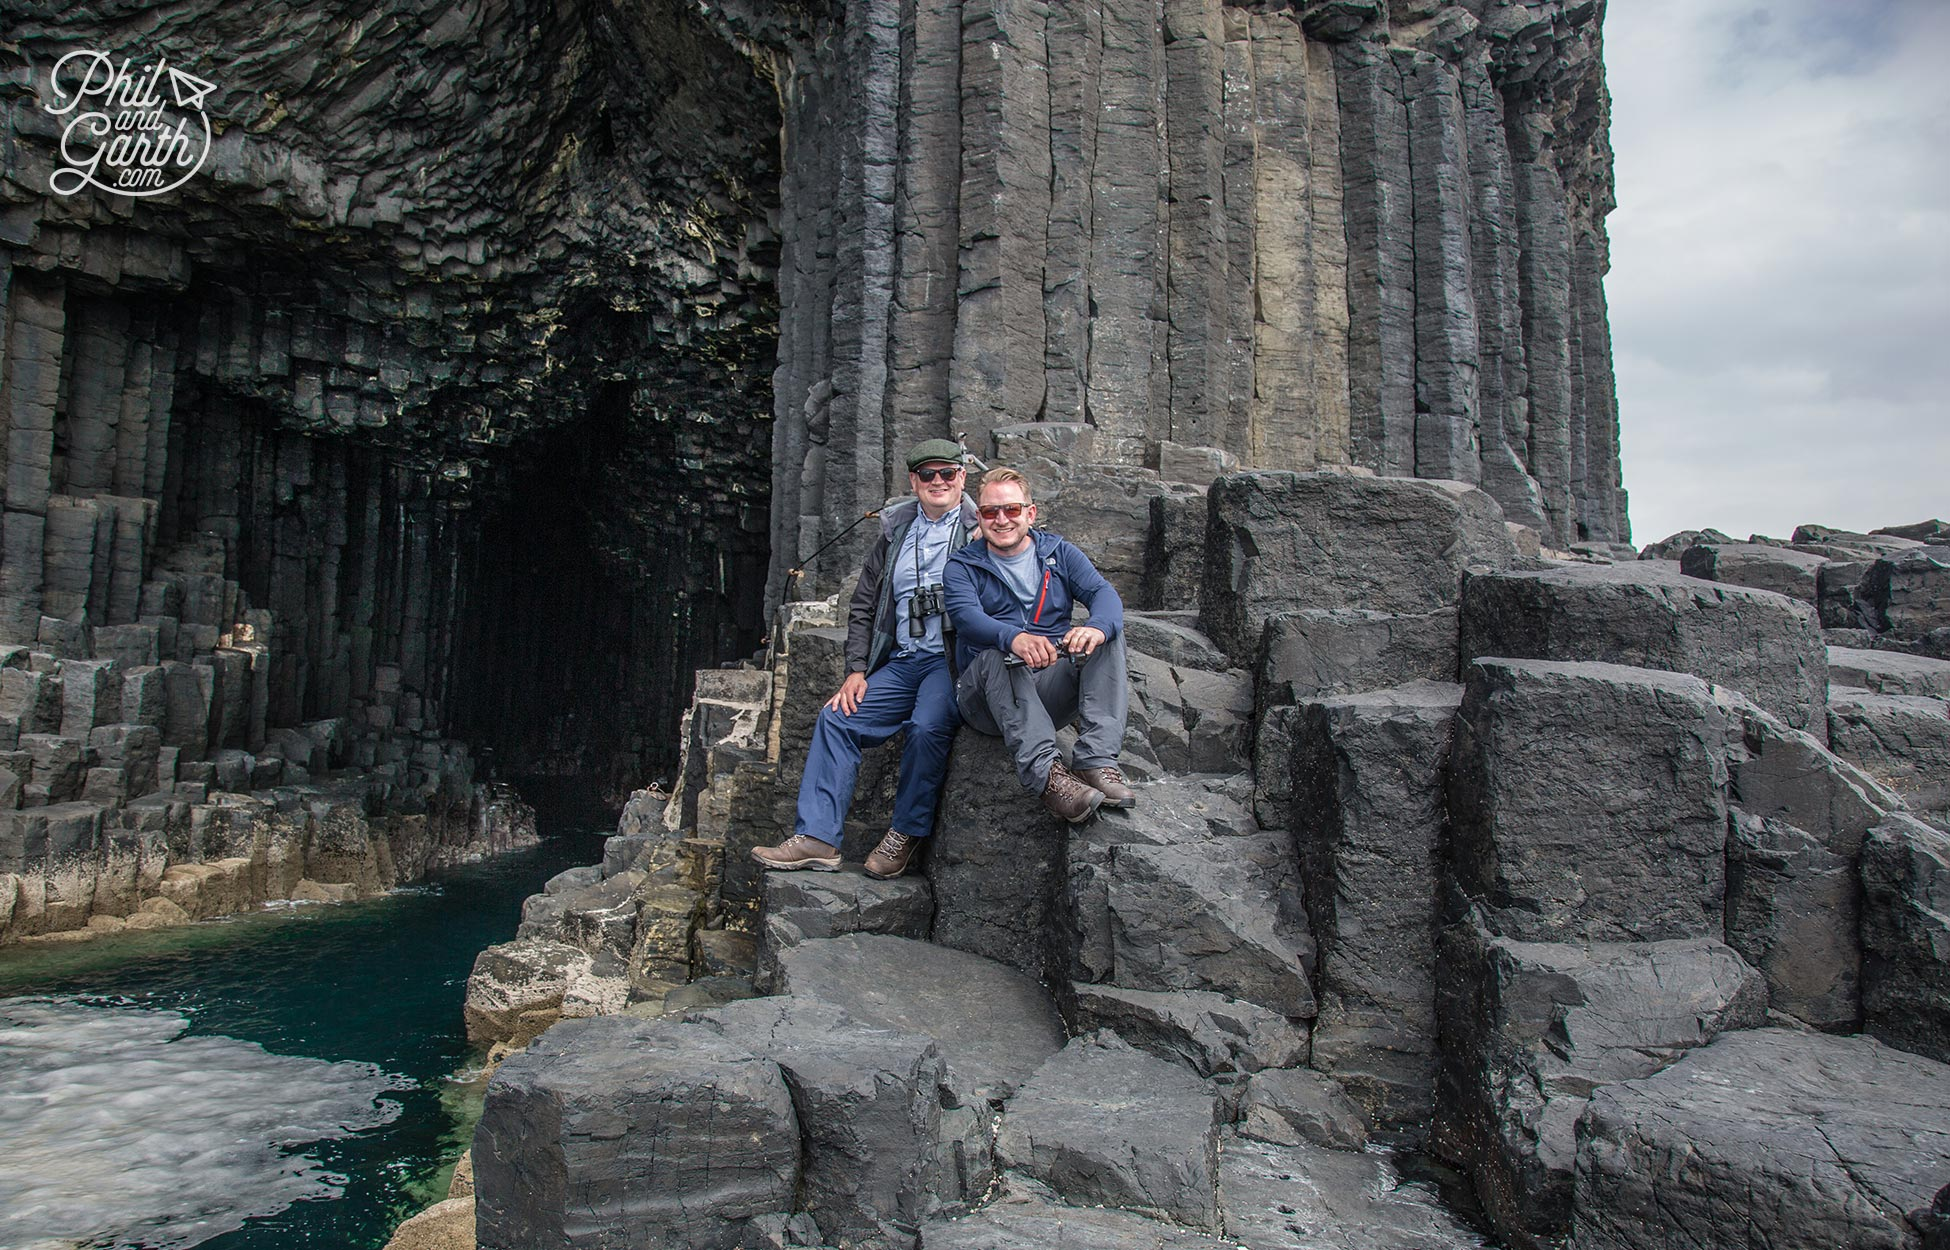 Phil and Garth on The Isle of Staffa